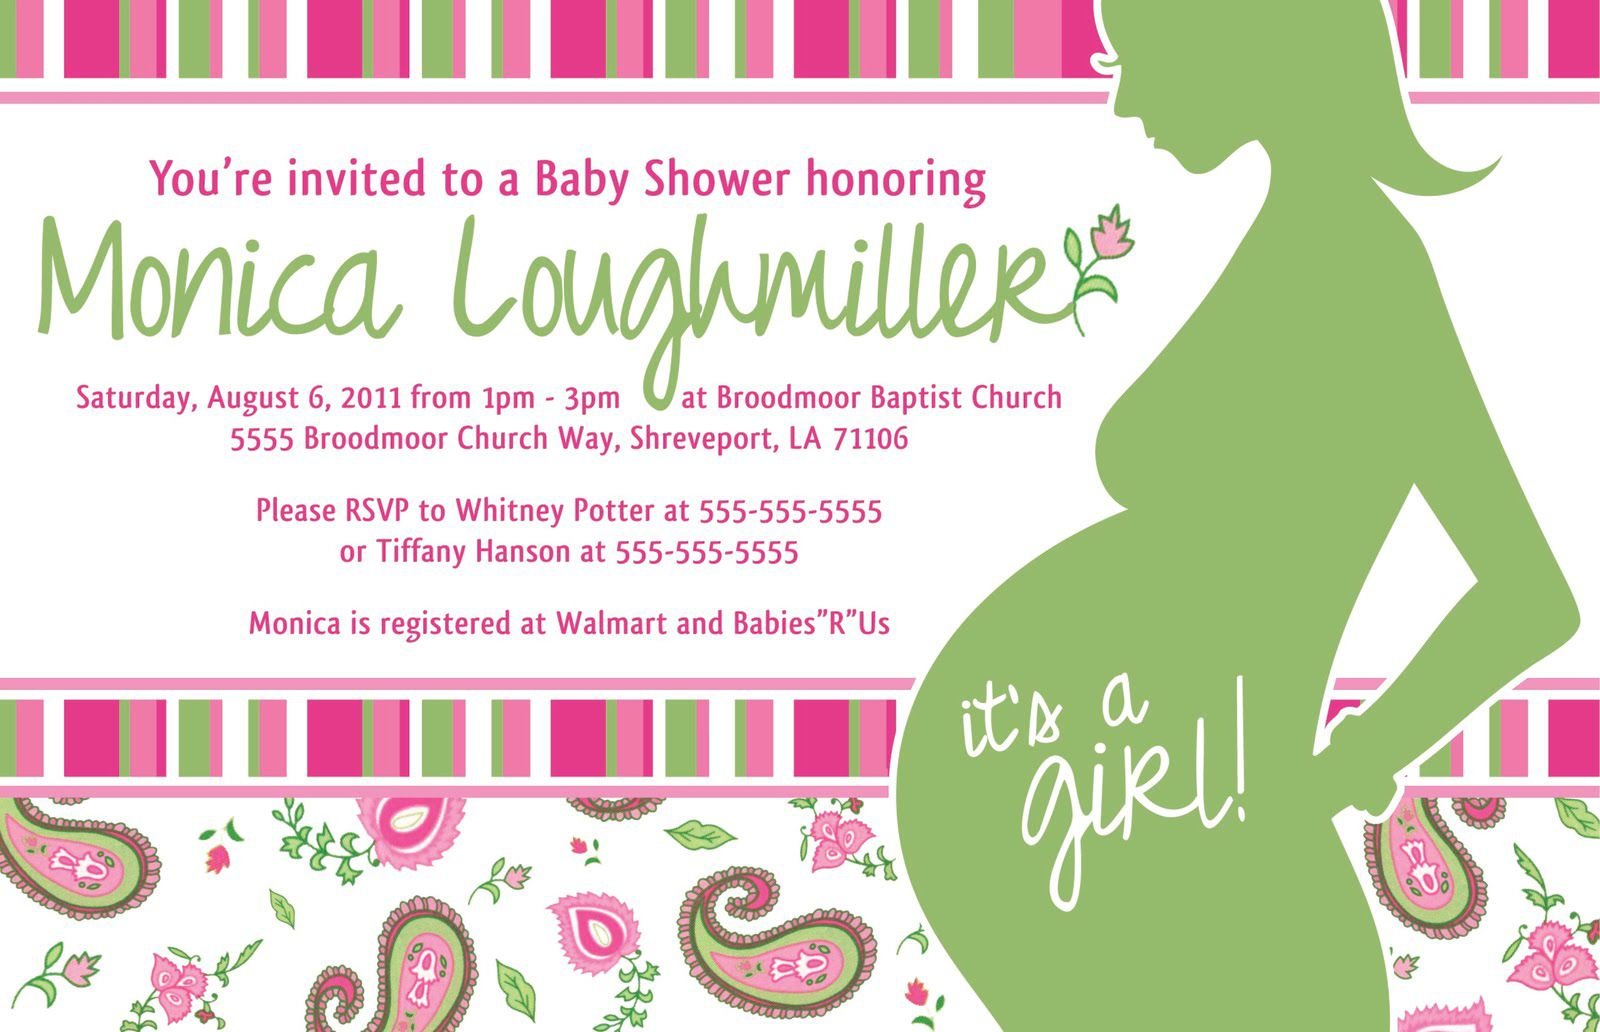 008 Rare Baby Shower Invitation Template Word Photo  Office Wording Sample Work DownloadFull